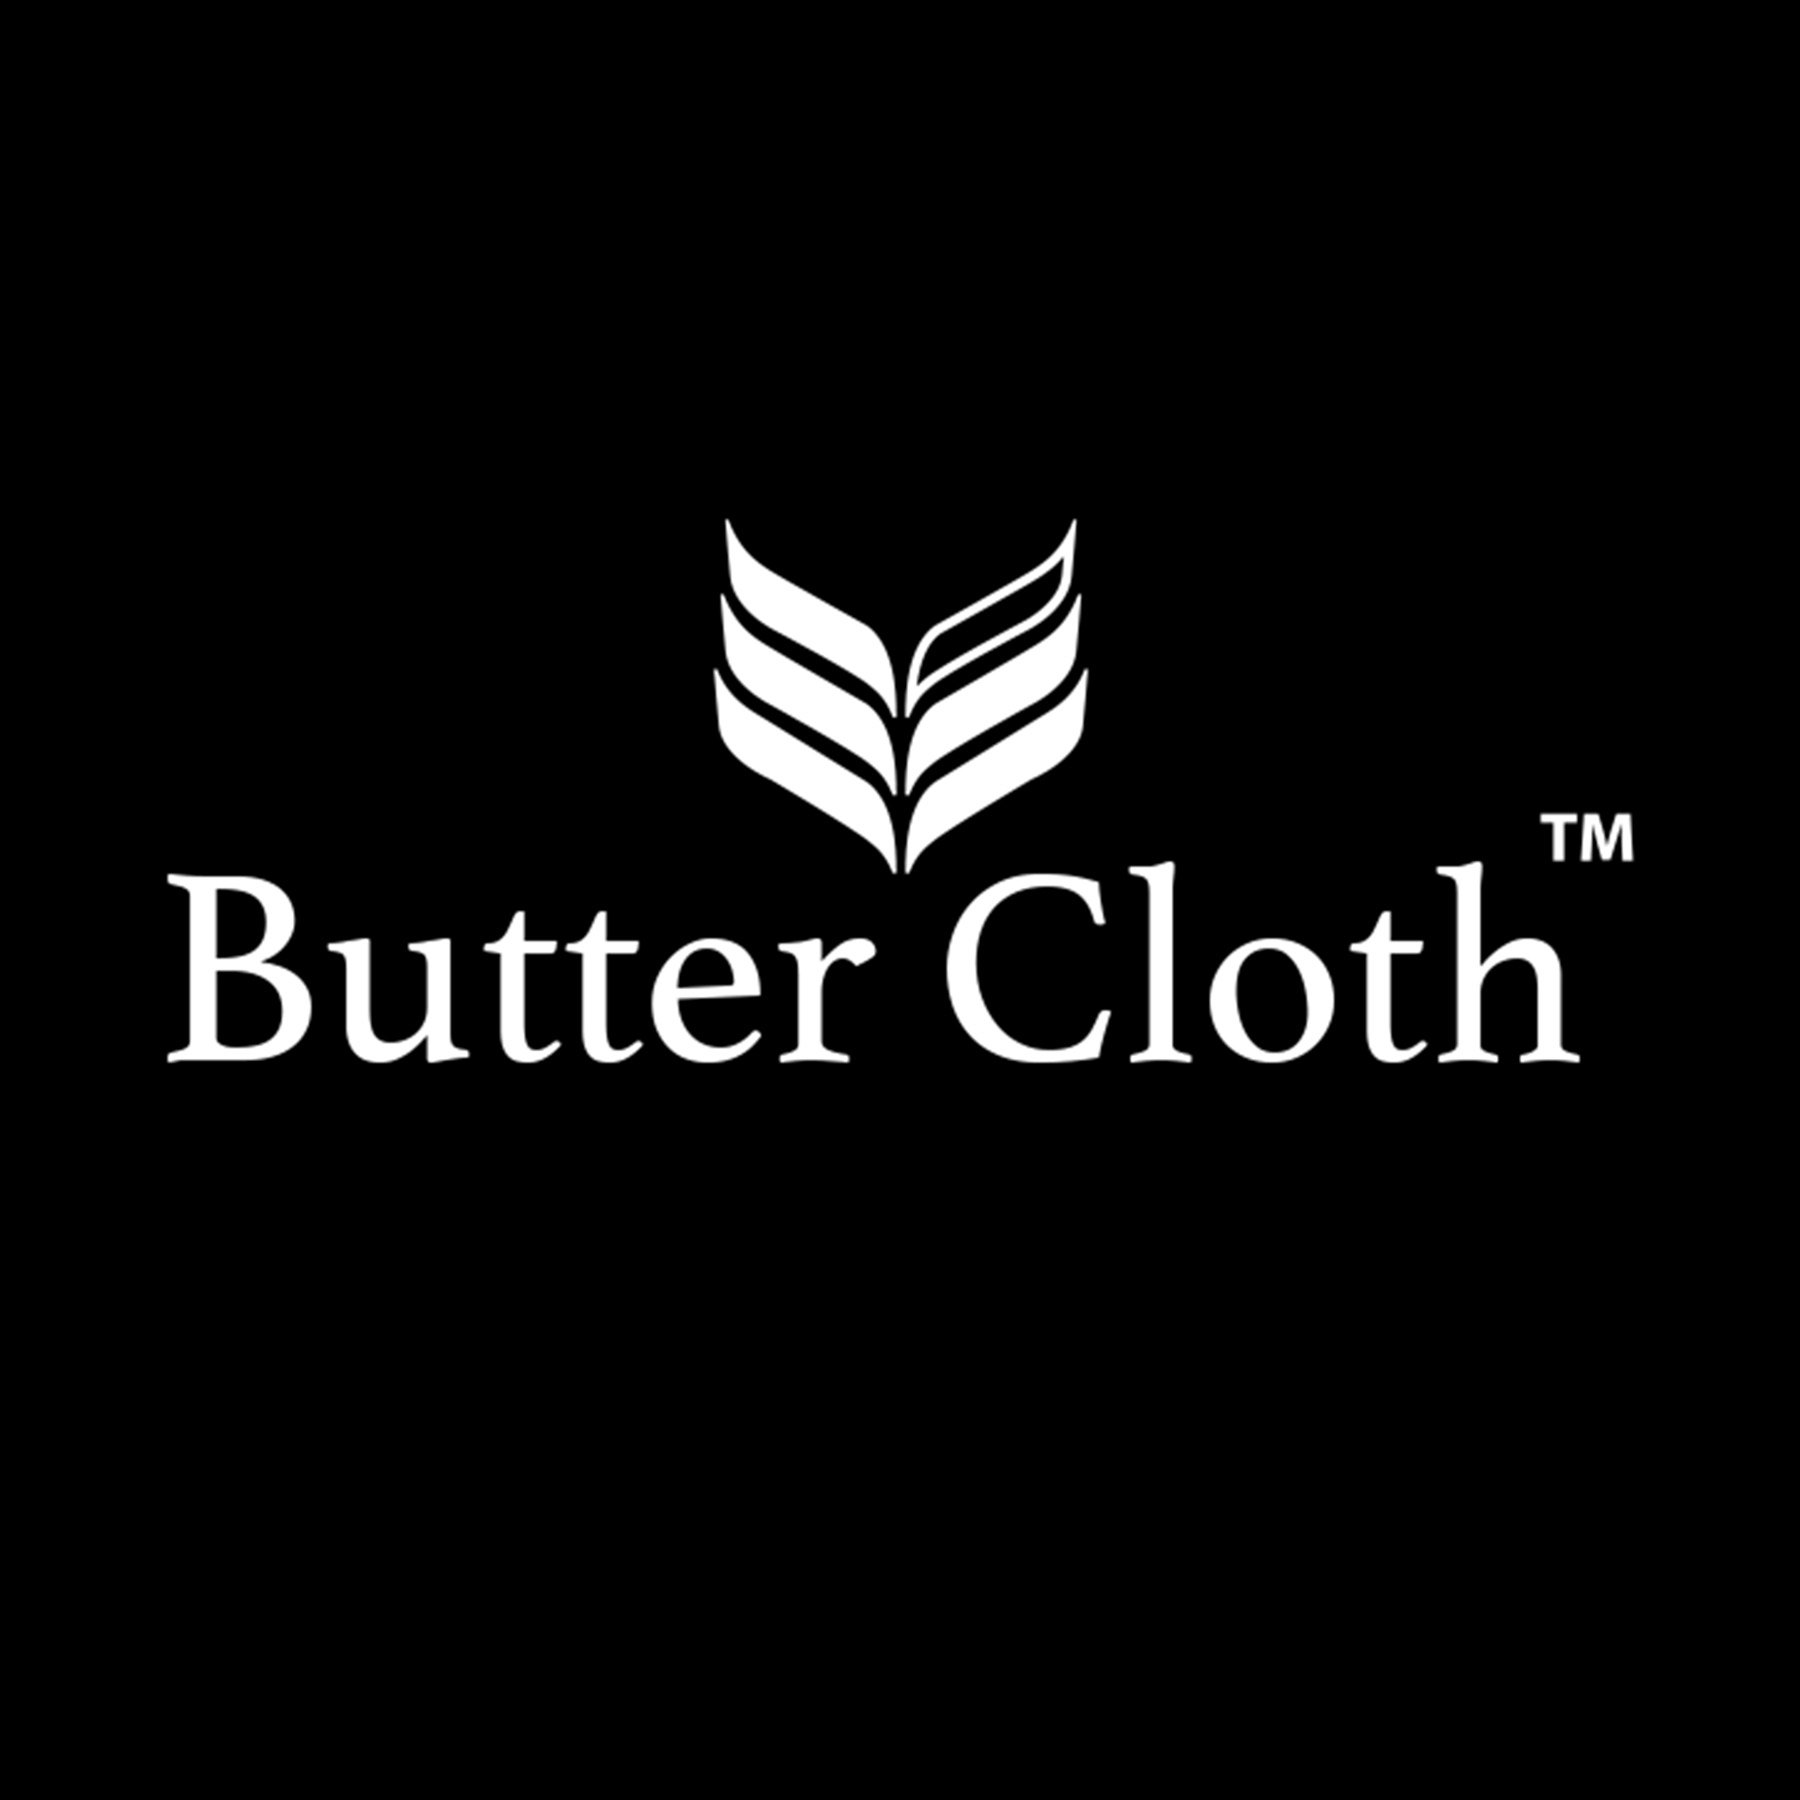 Butter Cloth coupons and Butter Cloth promo codes are at RebateCodes